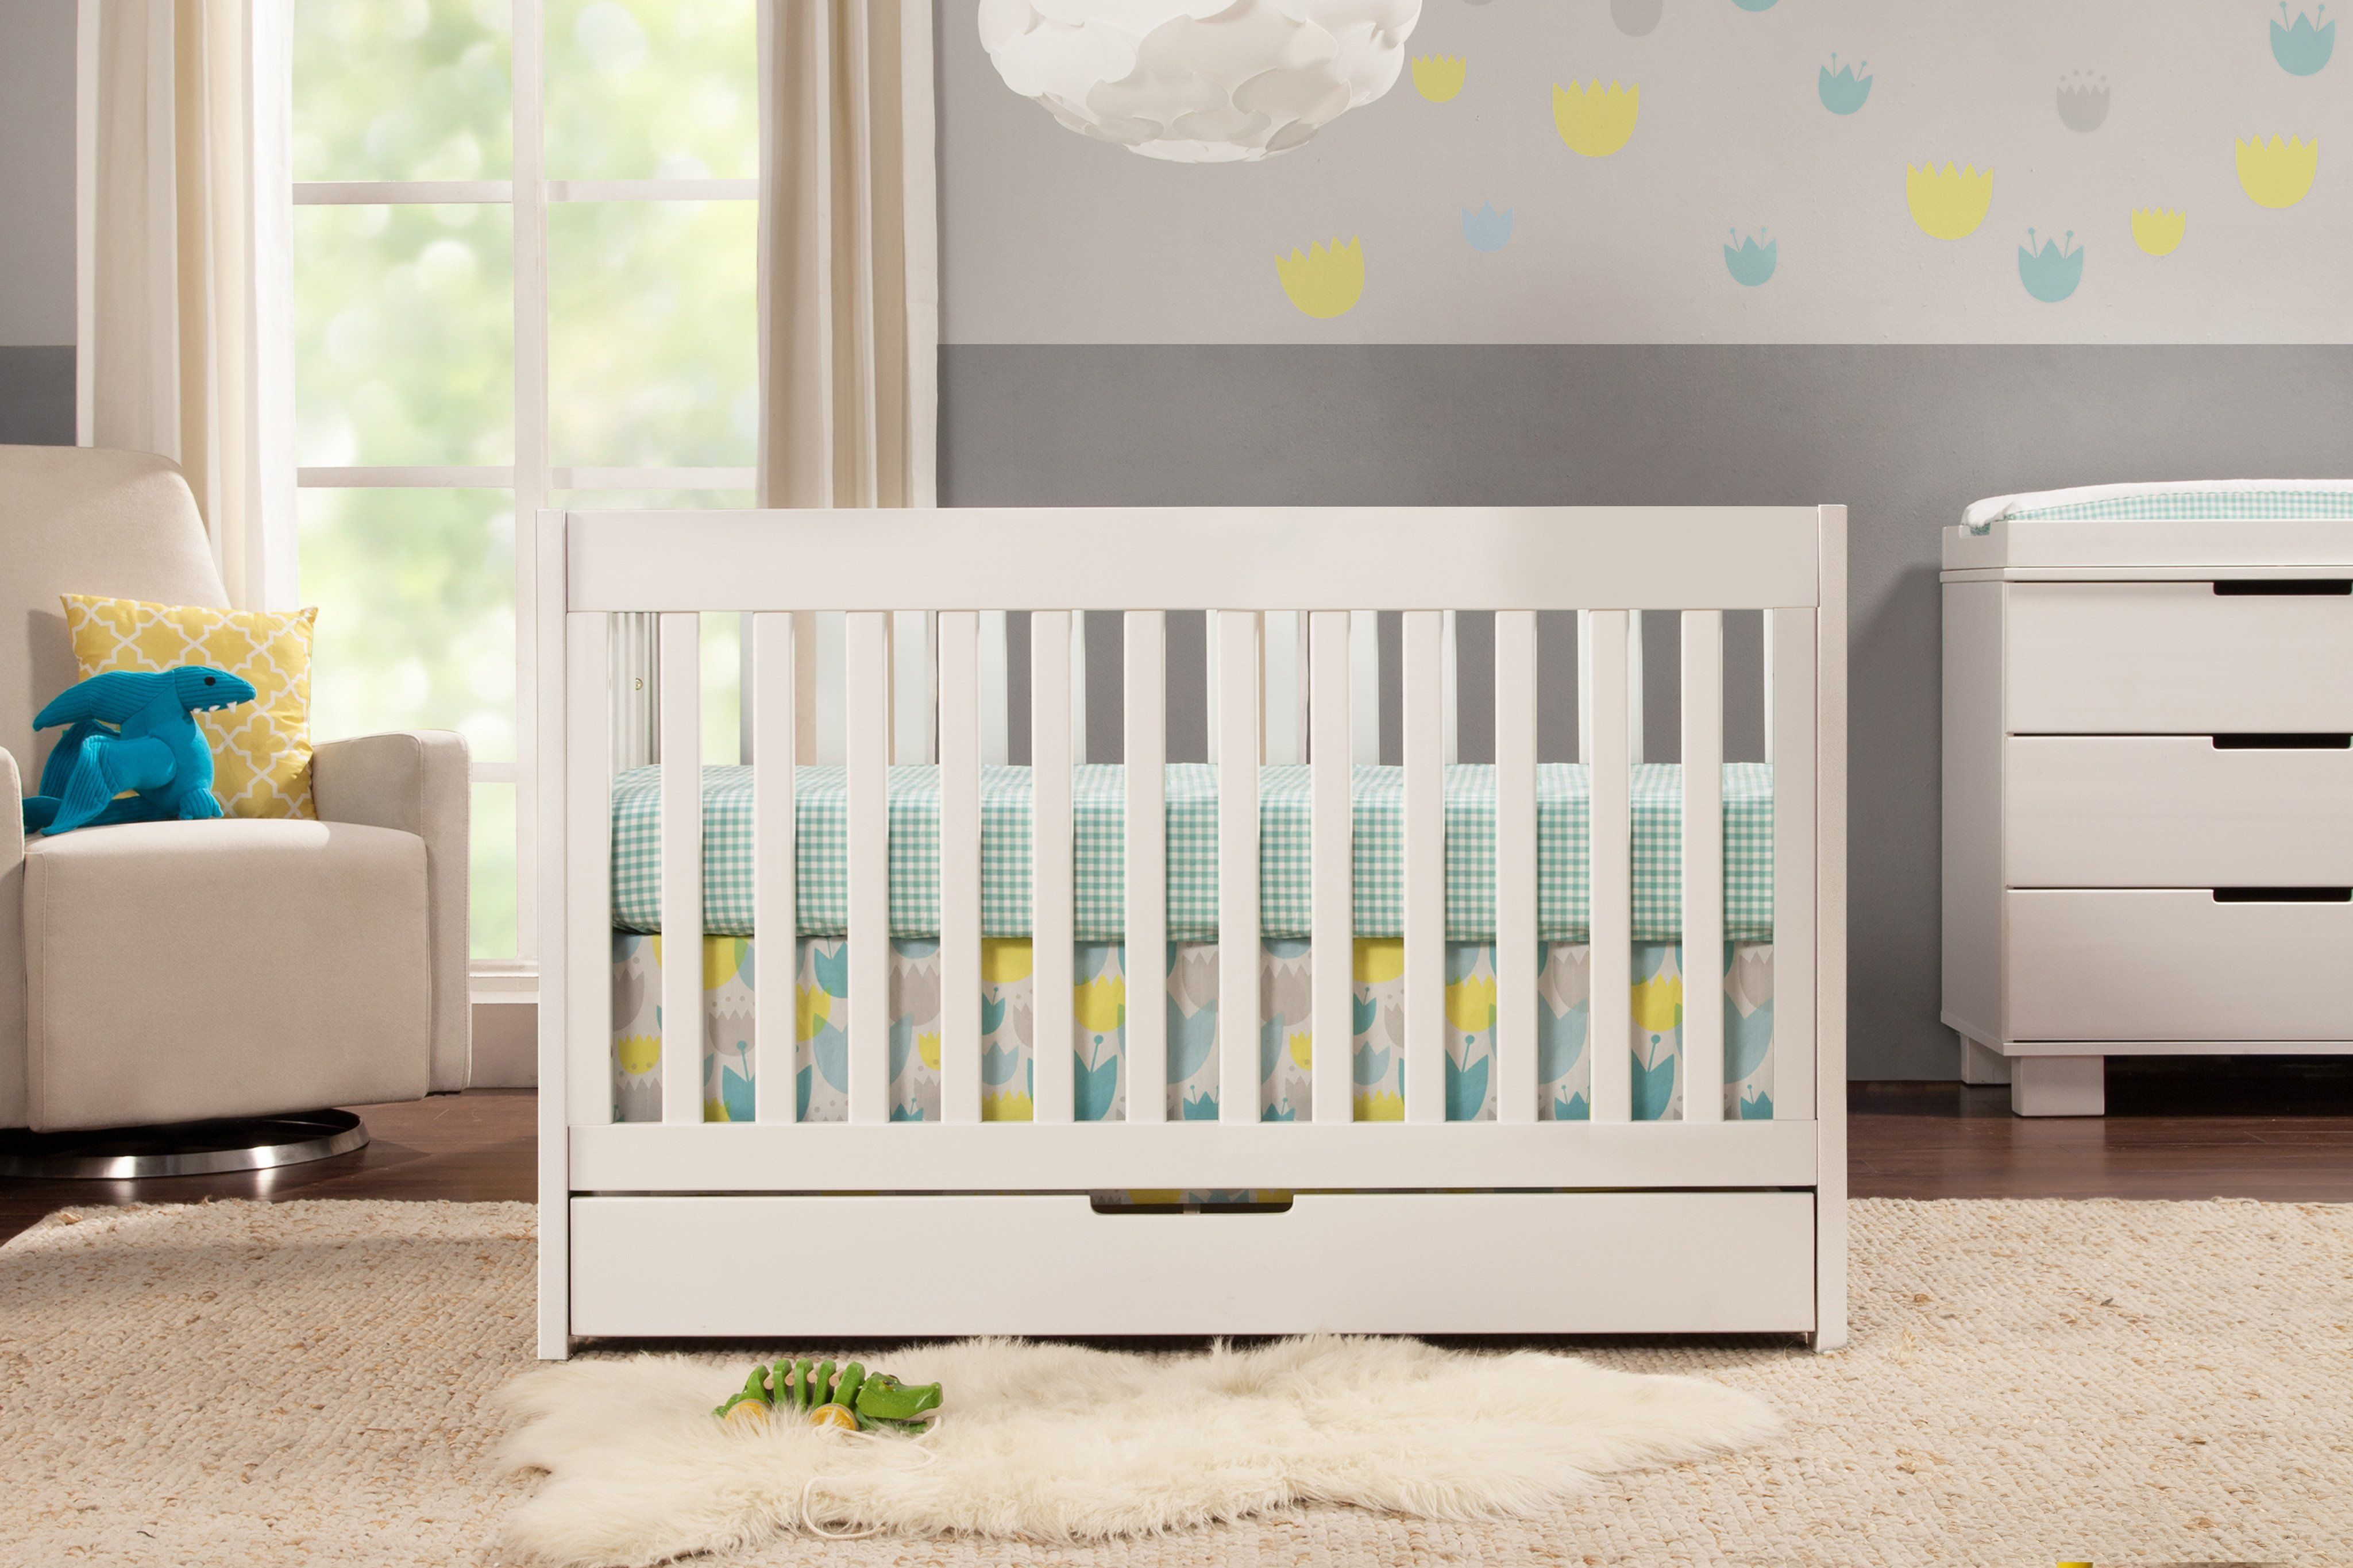 Mercer 3in1 Convertible Crib with Toddler Bed Conversion